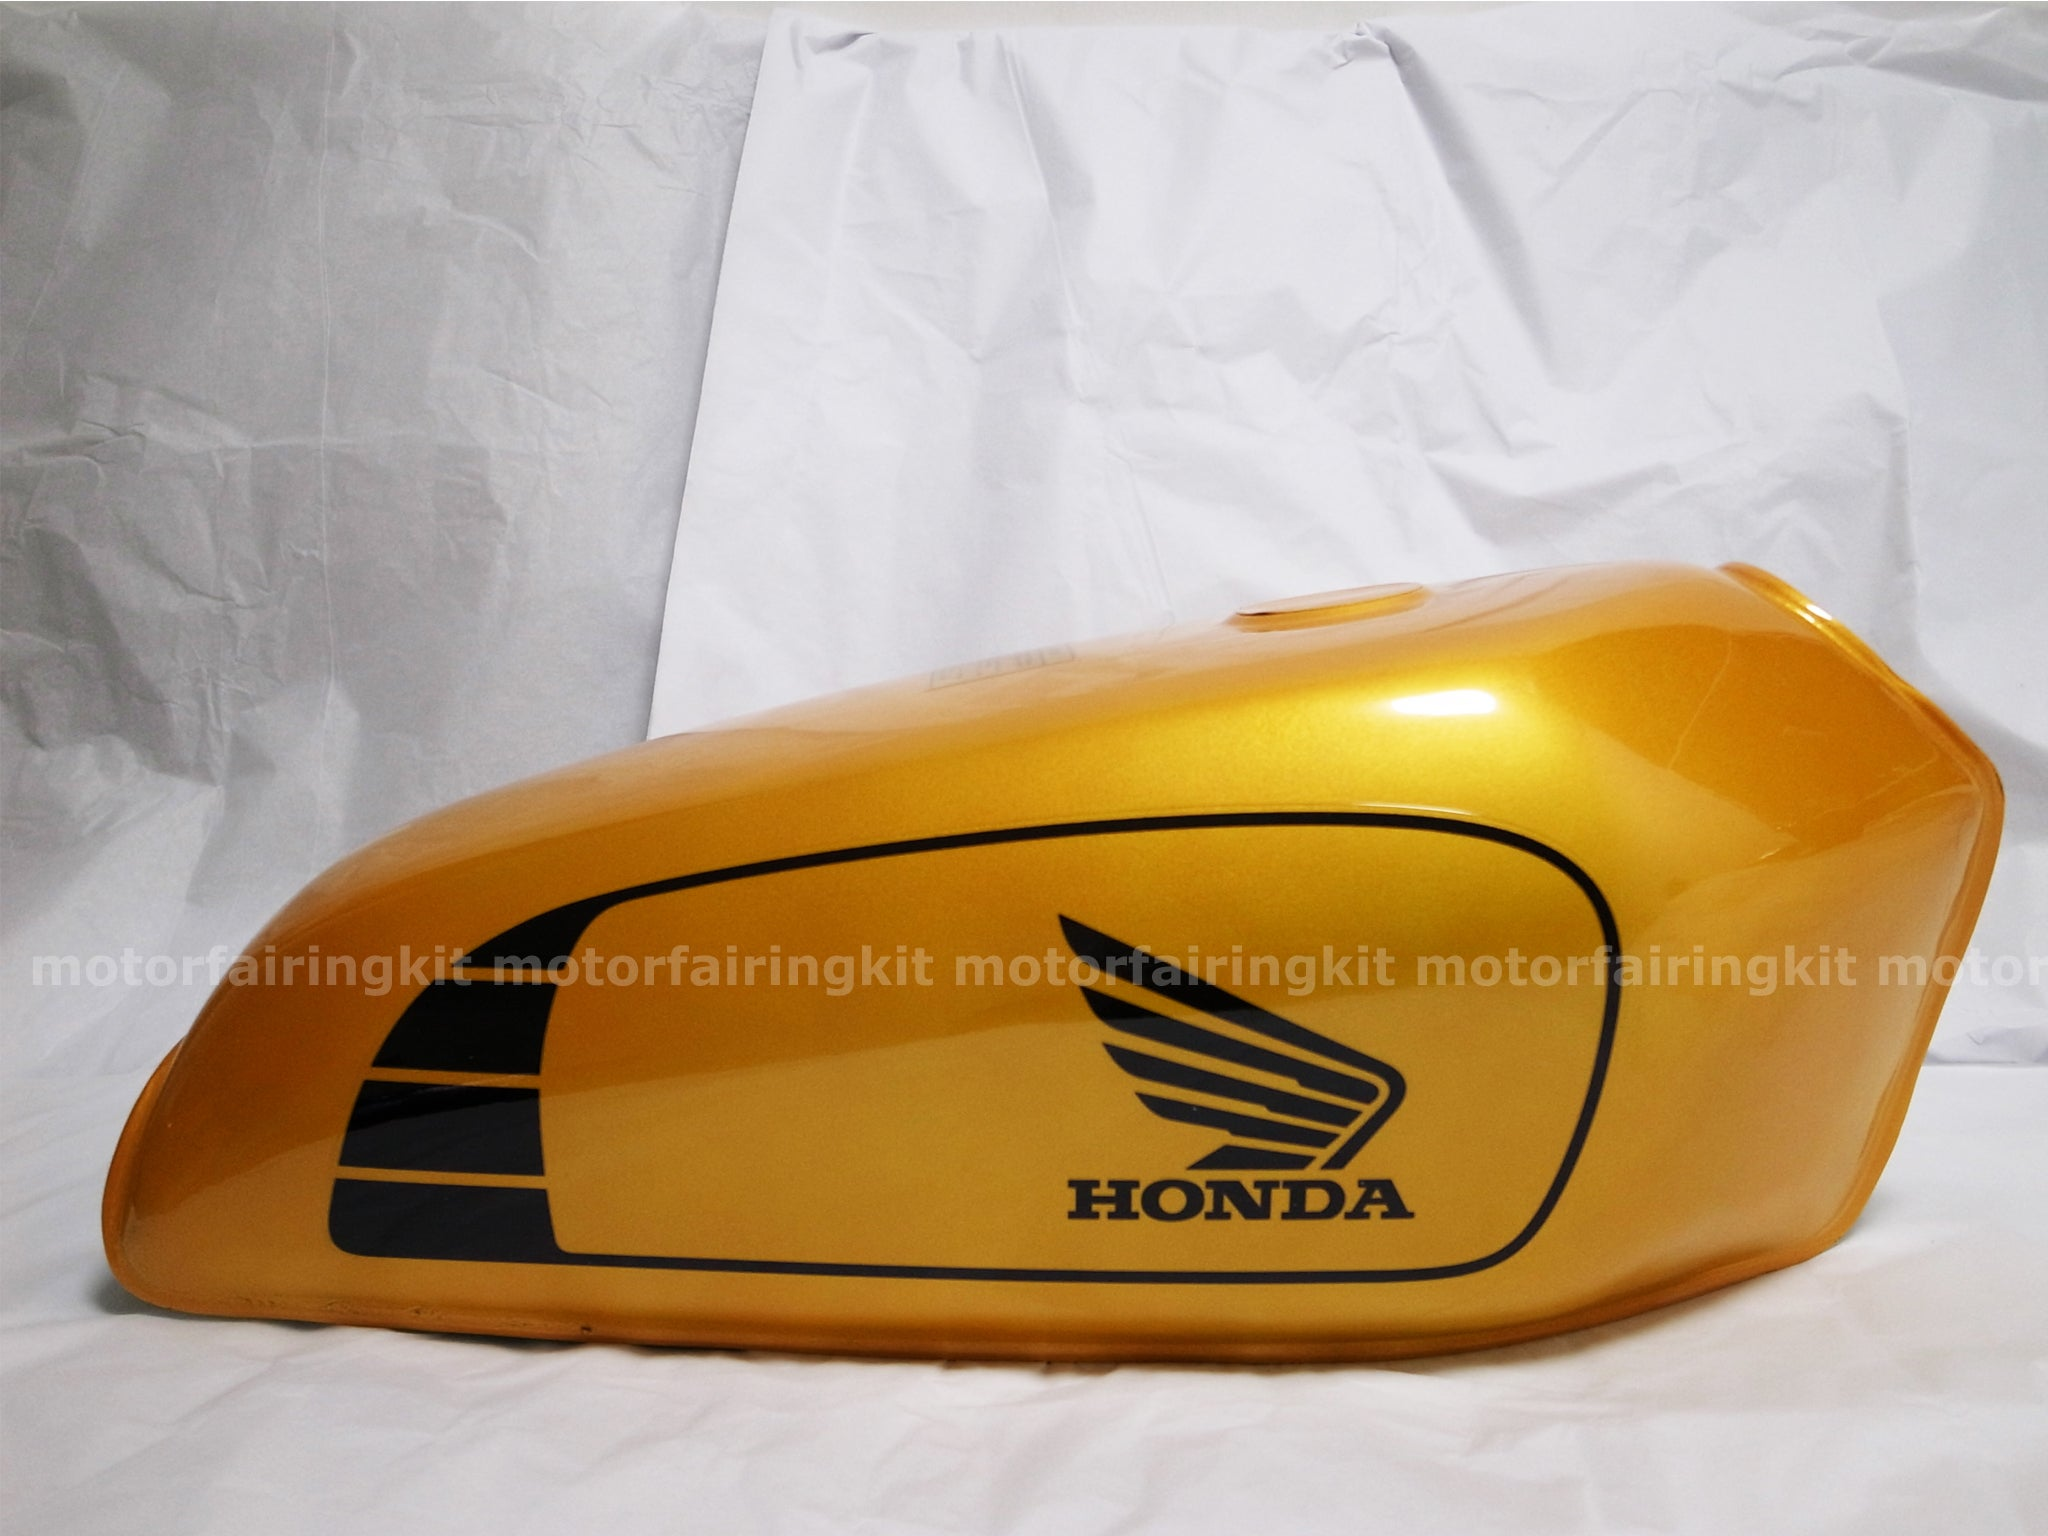 Cafe Racer Honda Cg125 Cb125 Fuel Tank Gas Tank Golden Wing Series Motor Fairing Kit